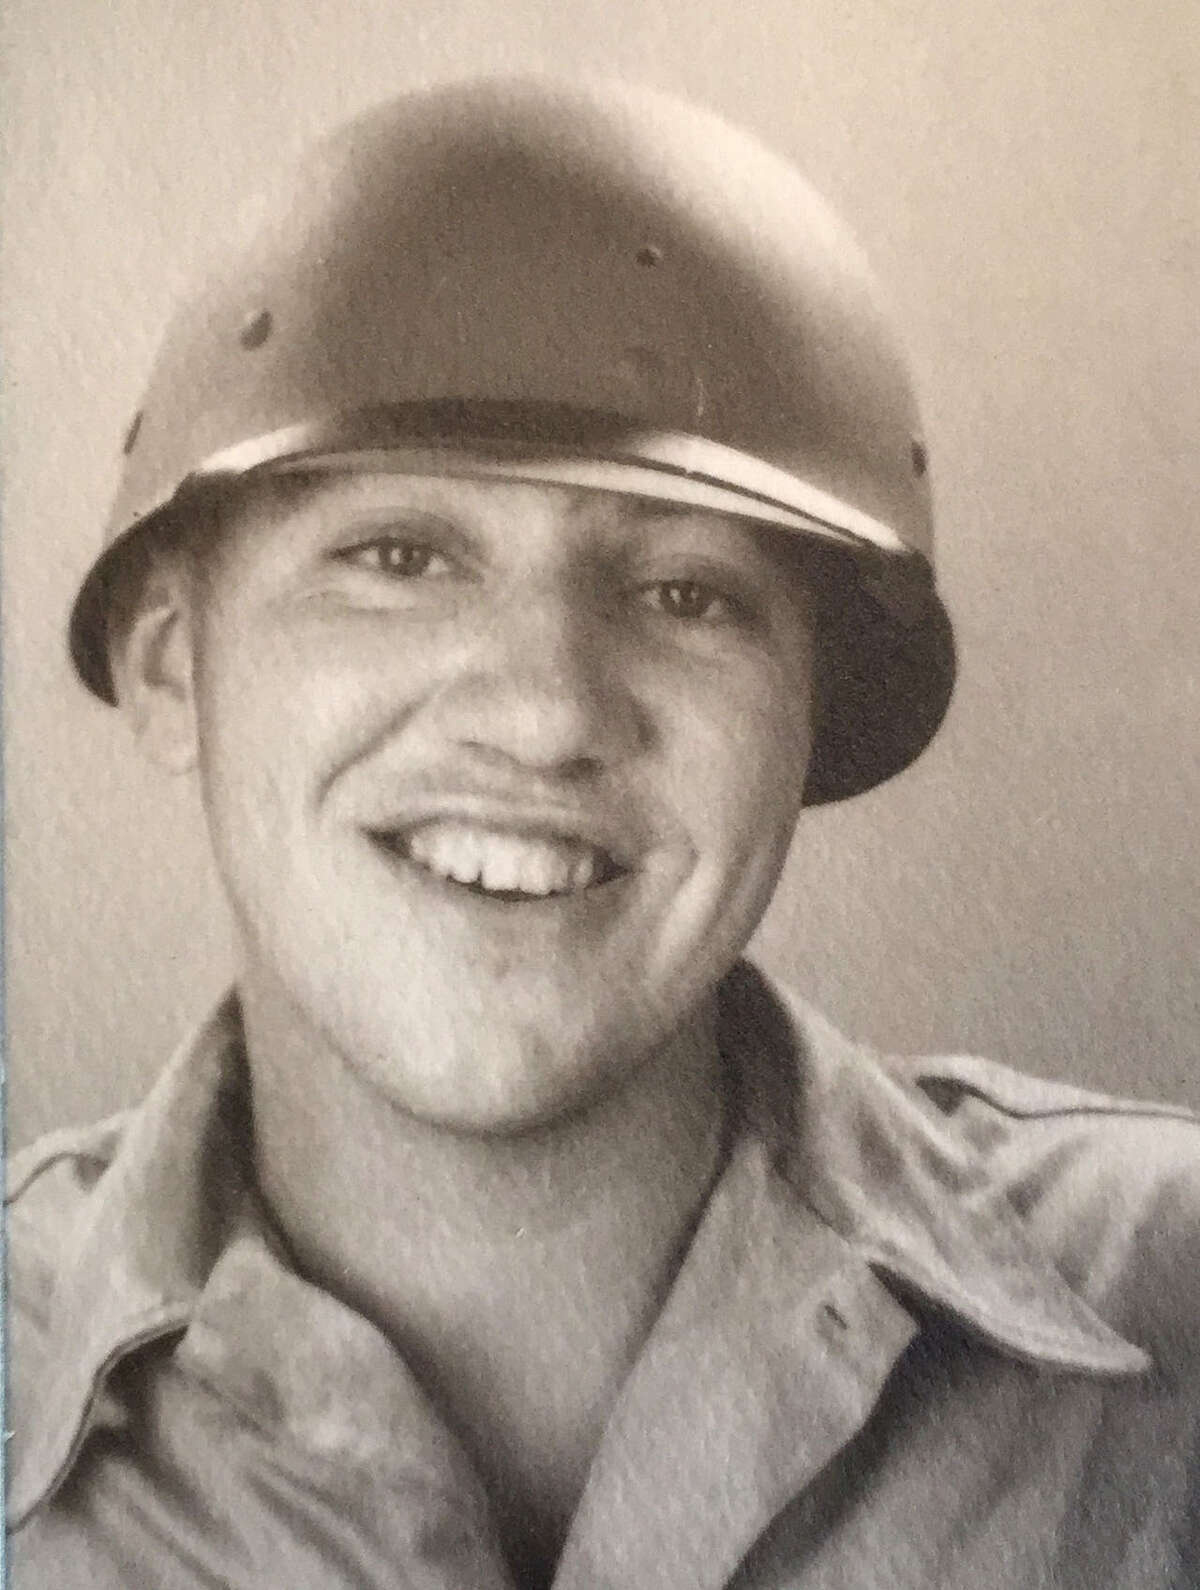 World War II soldier Thomas Youngs fought in the Battle of the Bulge and helped liberate a Nazi death camp.